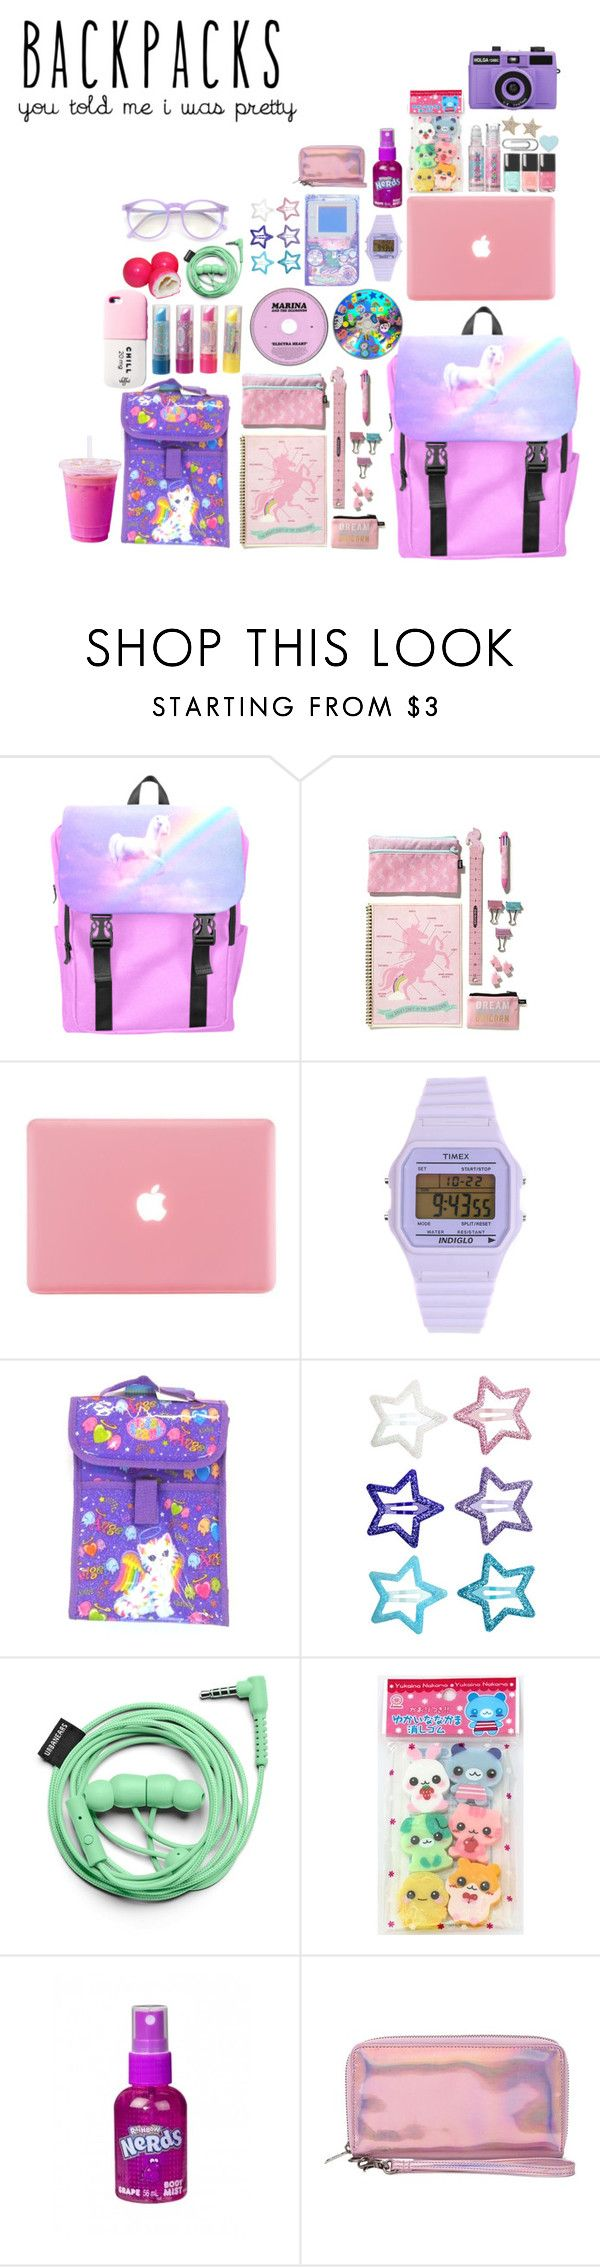 """Exo- Lotto"" by sanhamoonbine ❤ liked on Polyvore featuring Timex, Paul Frank, H&M, Urbanears, Valfré, Cheap Monday, Wildfox, backpacks, contestentry and PVStyleInsiderContest"